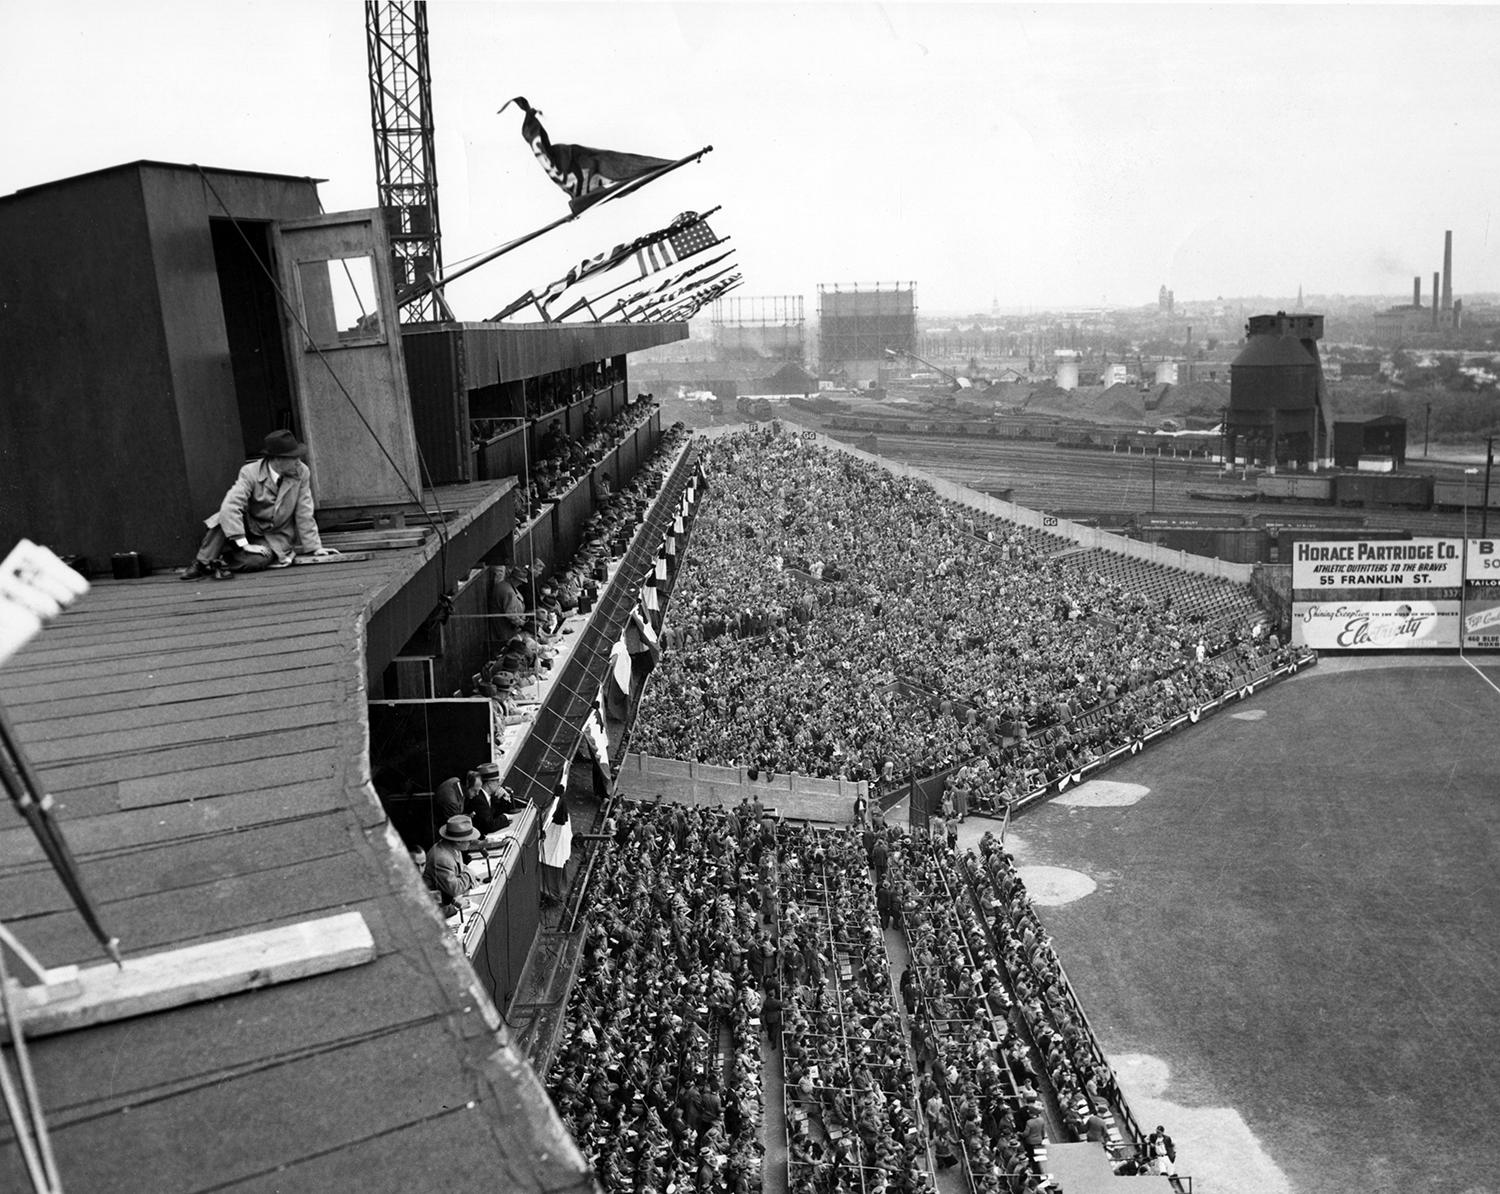 Due to its larger seating capacity than Fenway Park, the Red Sox rented Boston's Braves Field for the 1916 World Series. (National Baseball Hall of Fame)